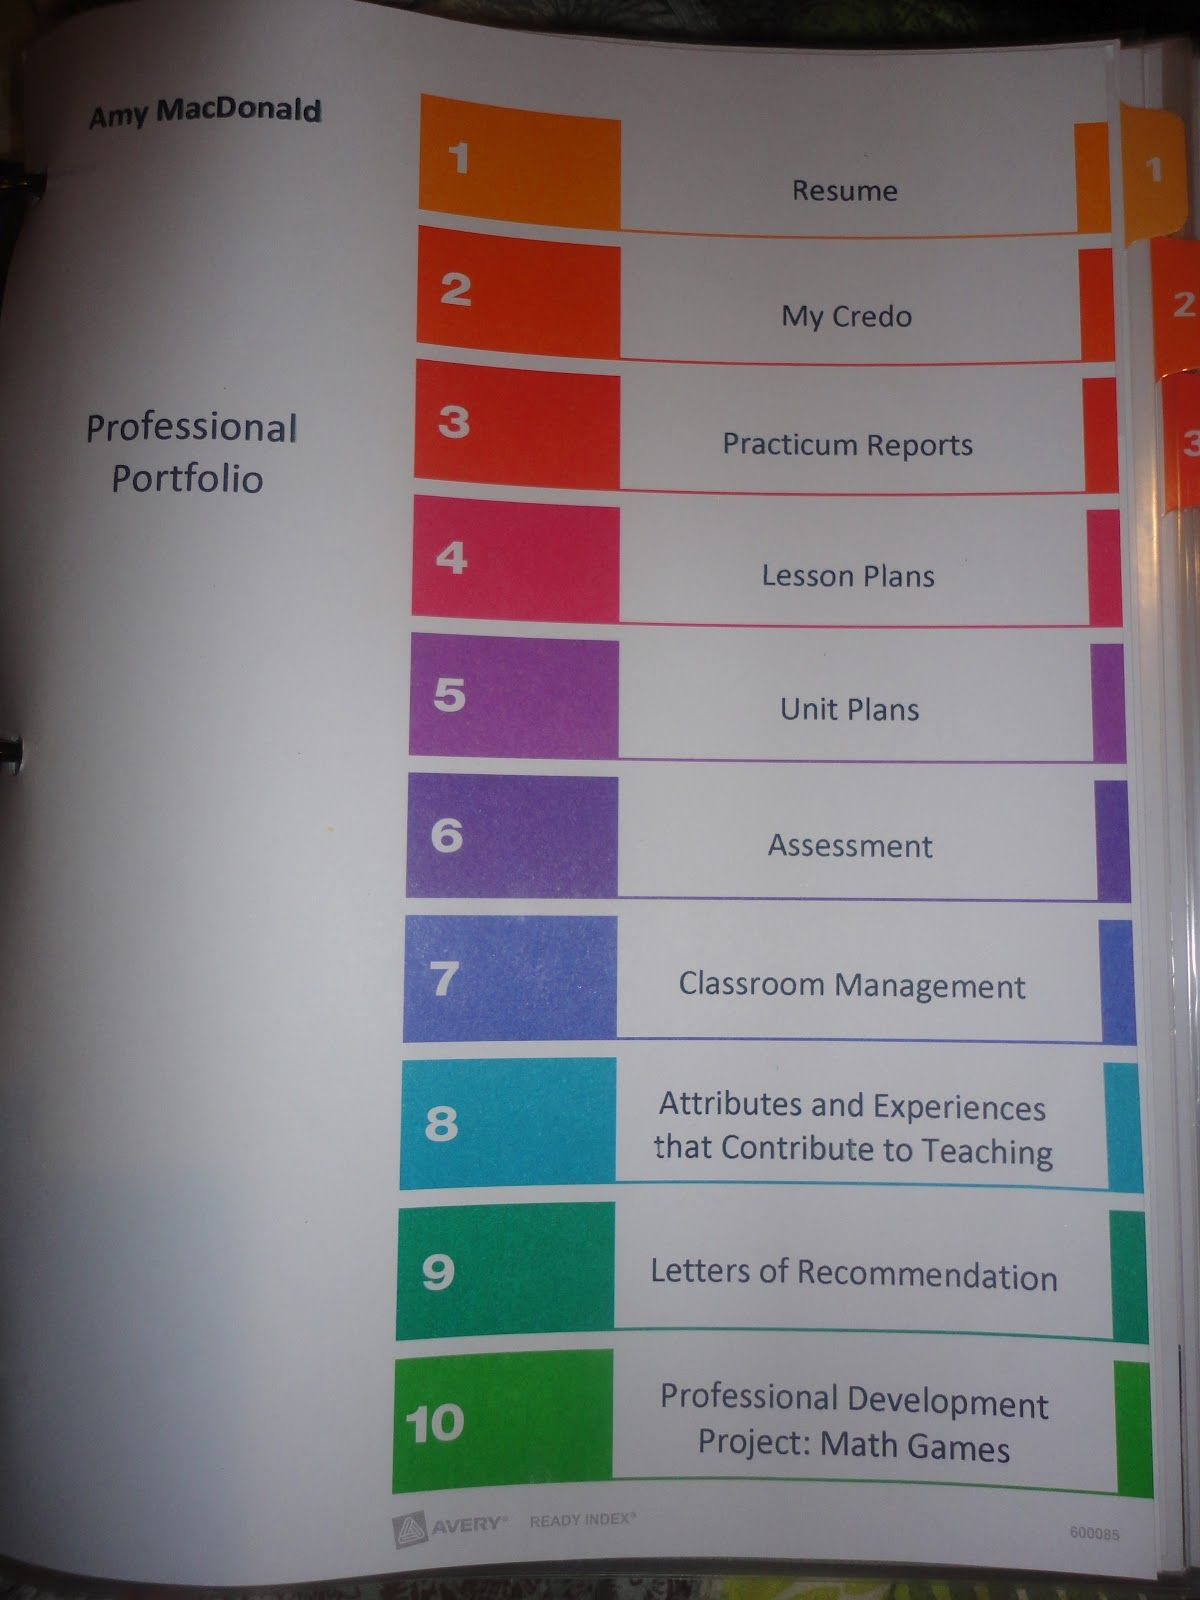 images about social work professional portfolio 1000 images about social work professional portfolio business networking professional cv and time management tips